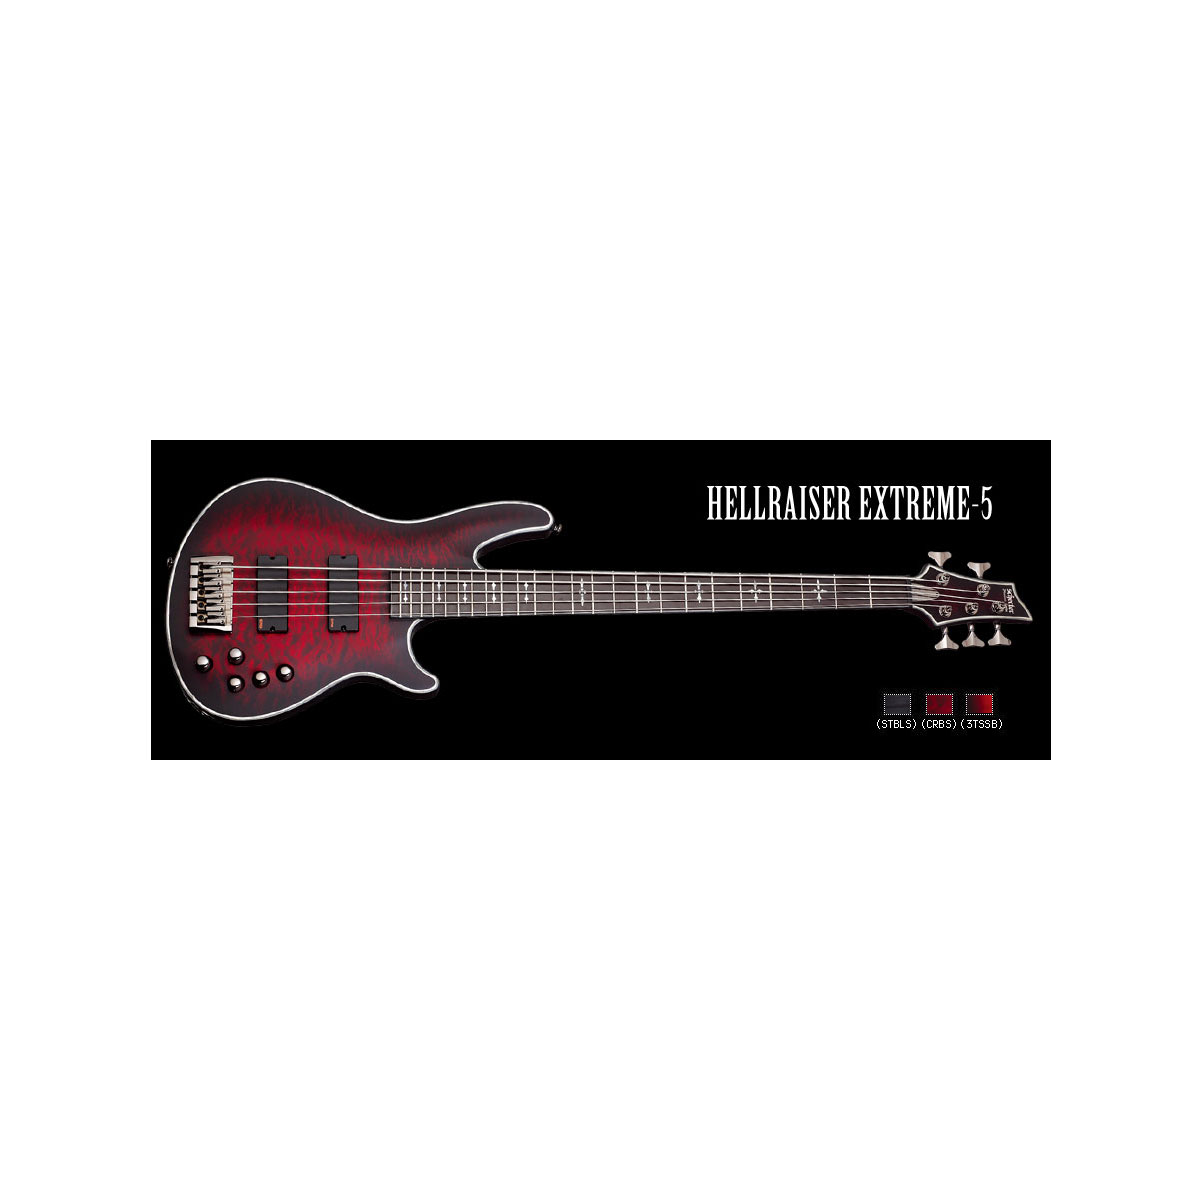 Schecter / HELLRAISER EXTREME 5 Crimson Red Burst シェクター 5弦ベース 【お取り寄せ商品】